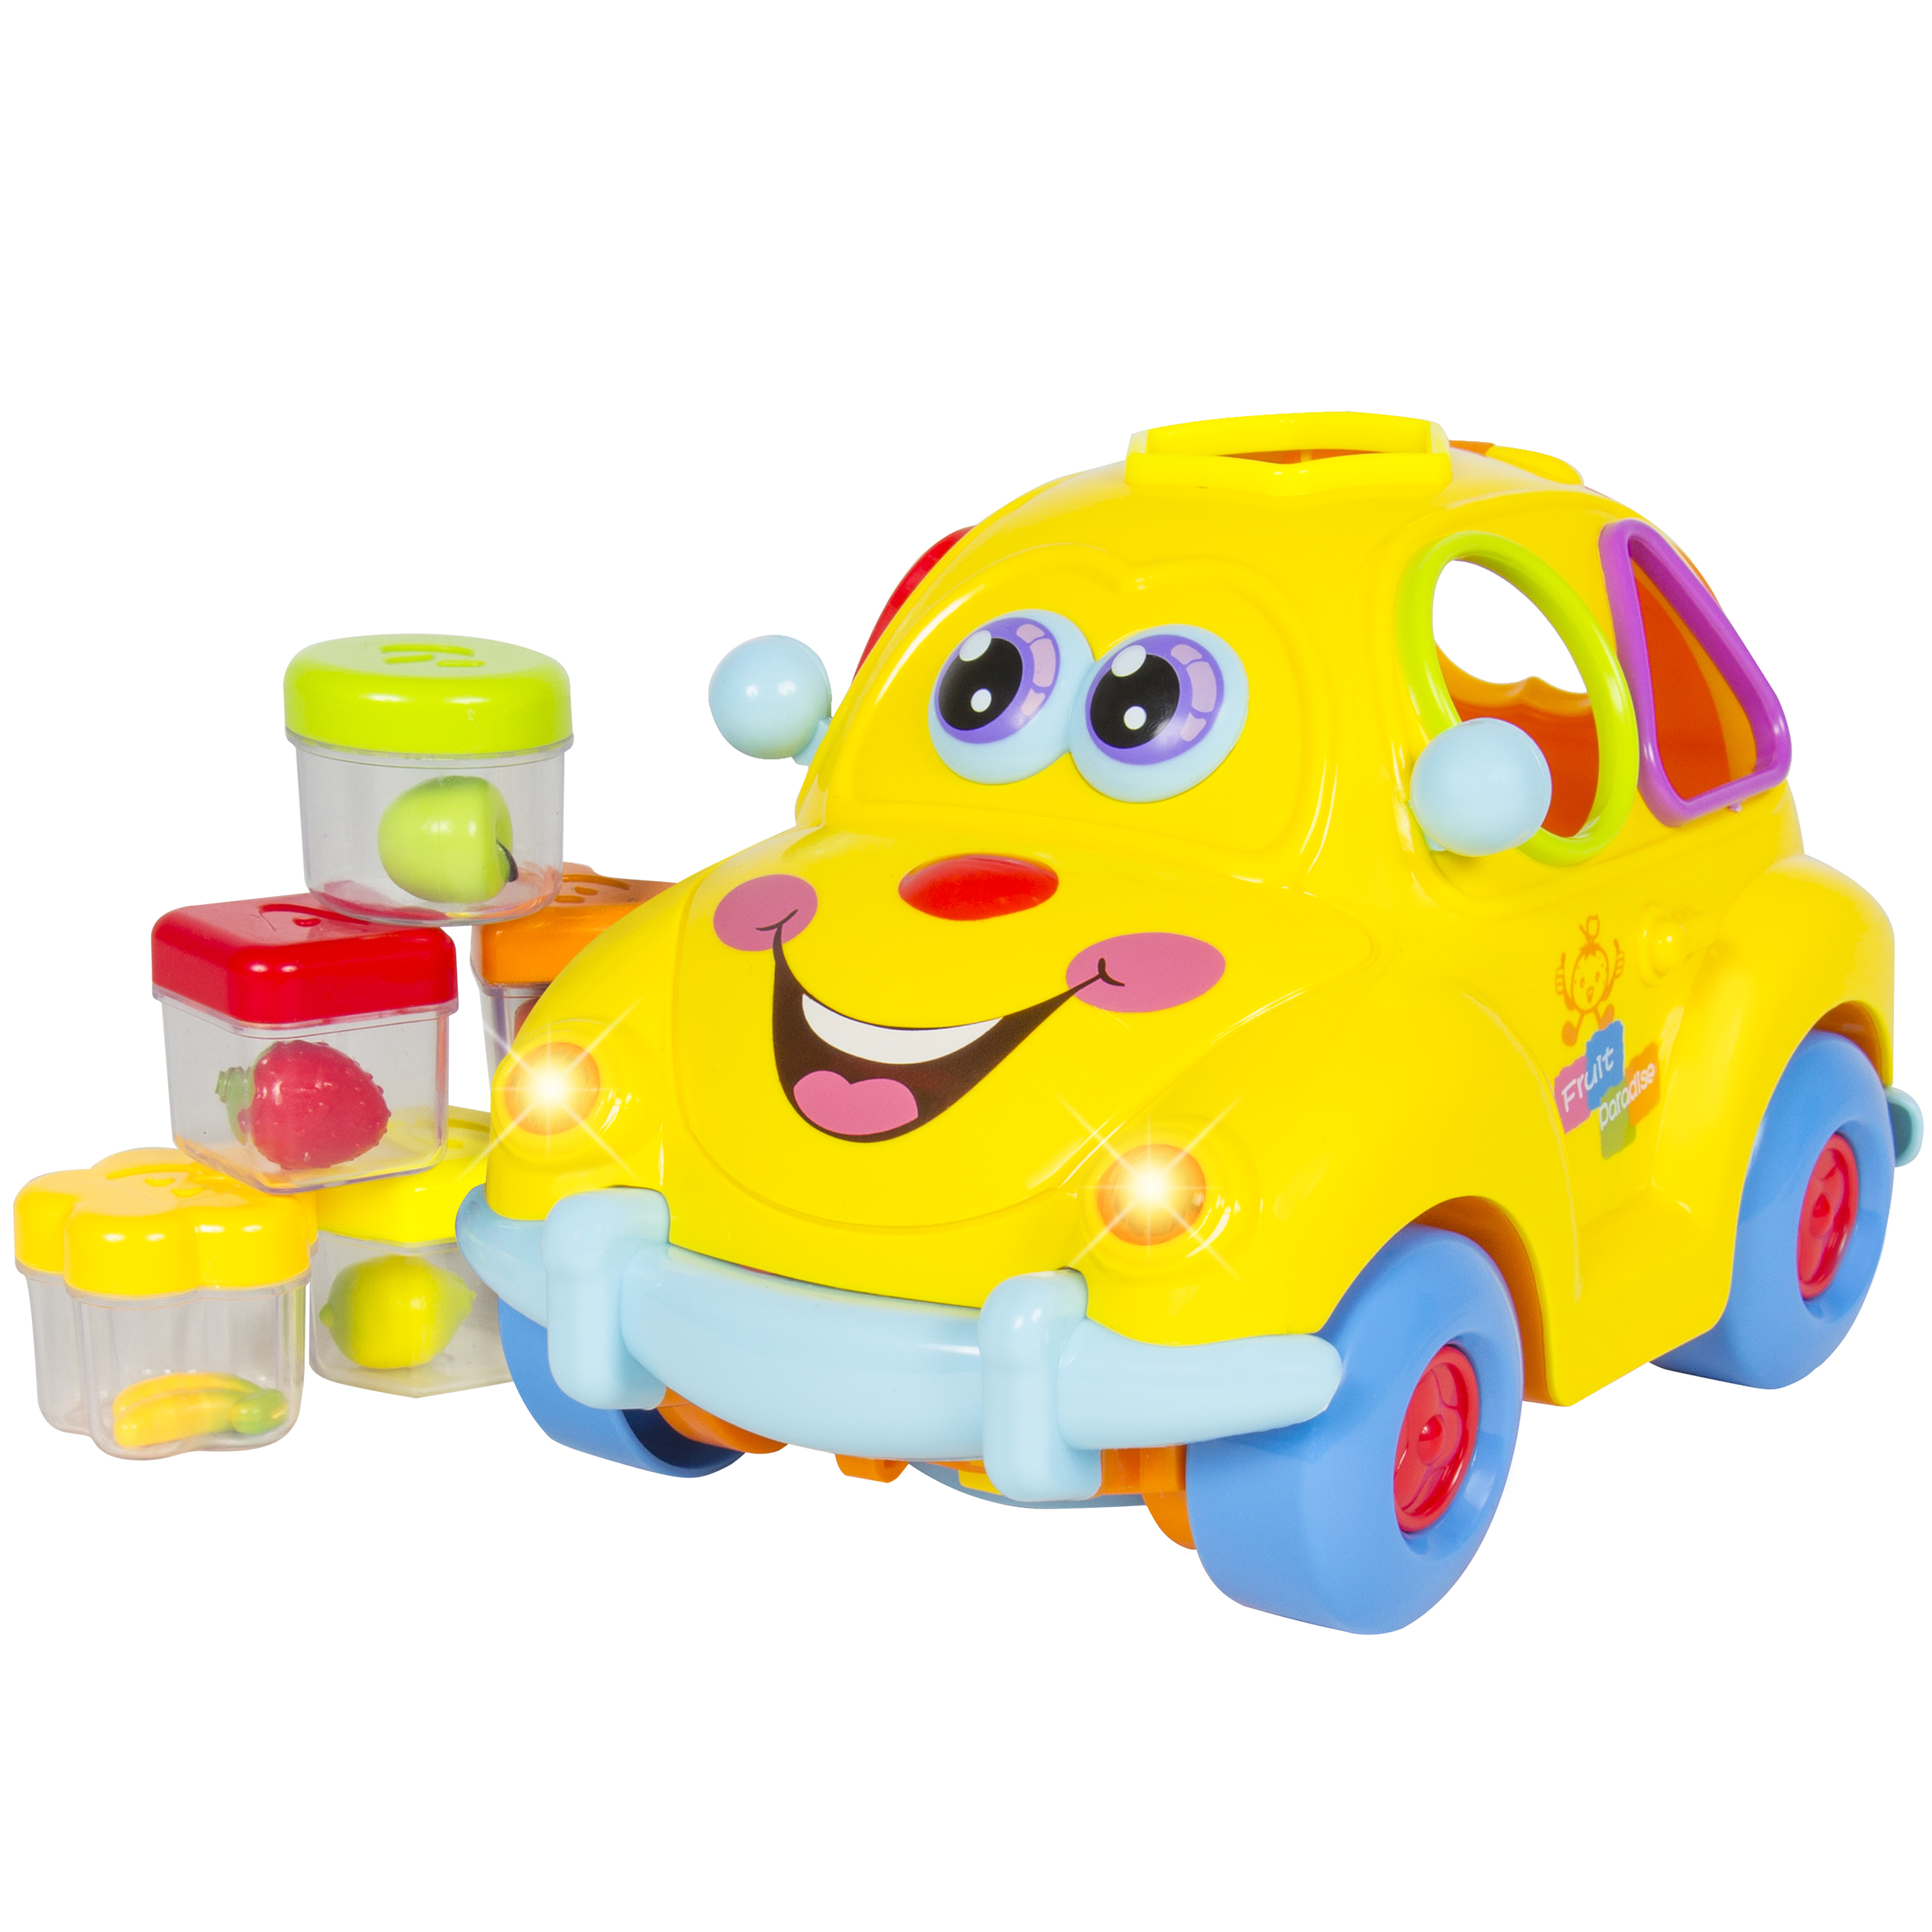 Best Choice Products Electric Toy Car w/ Flashing Front & Back Lights and Music, Bump'n'Go, Shape Sorter